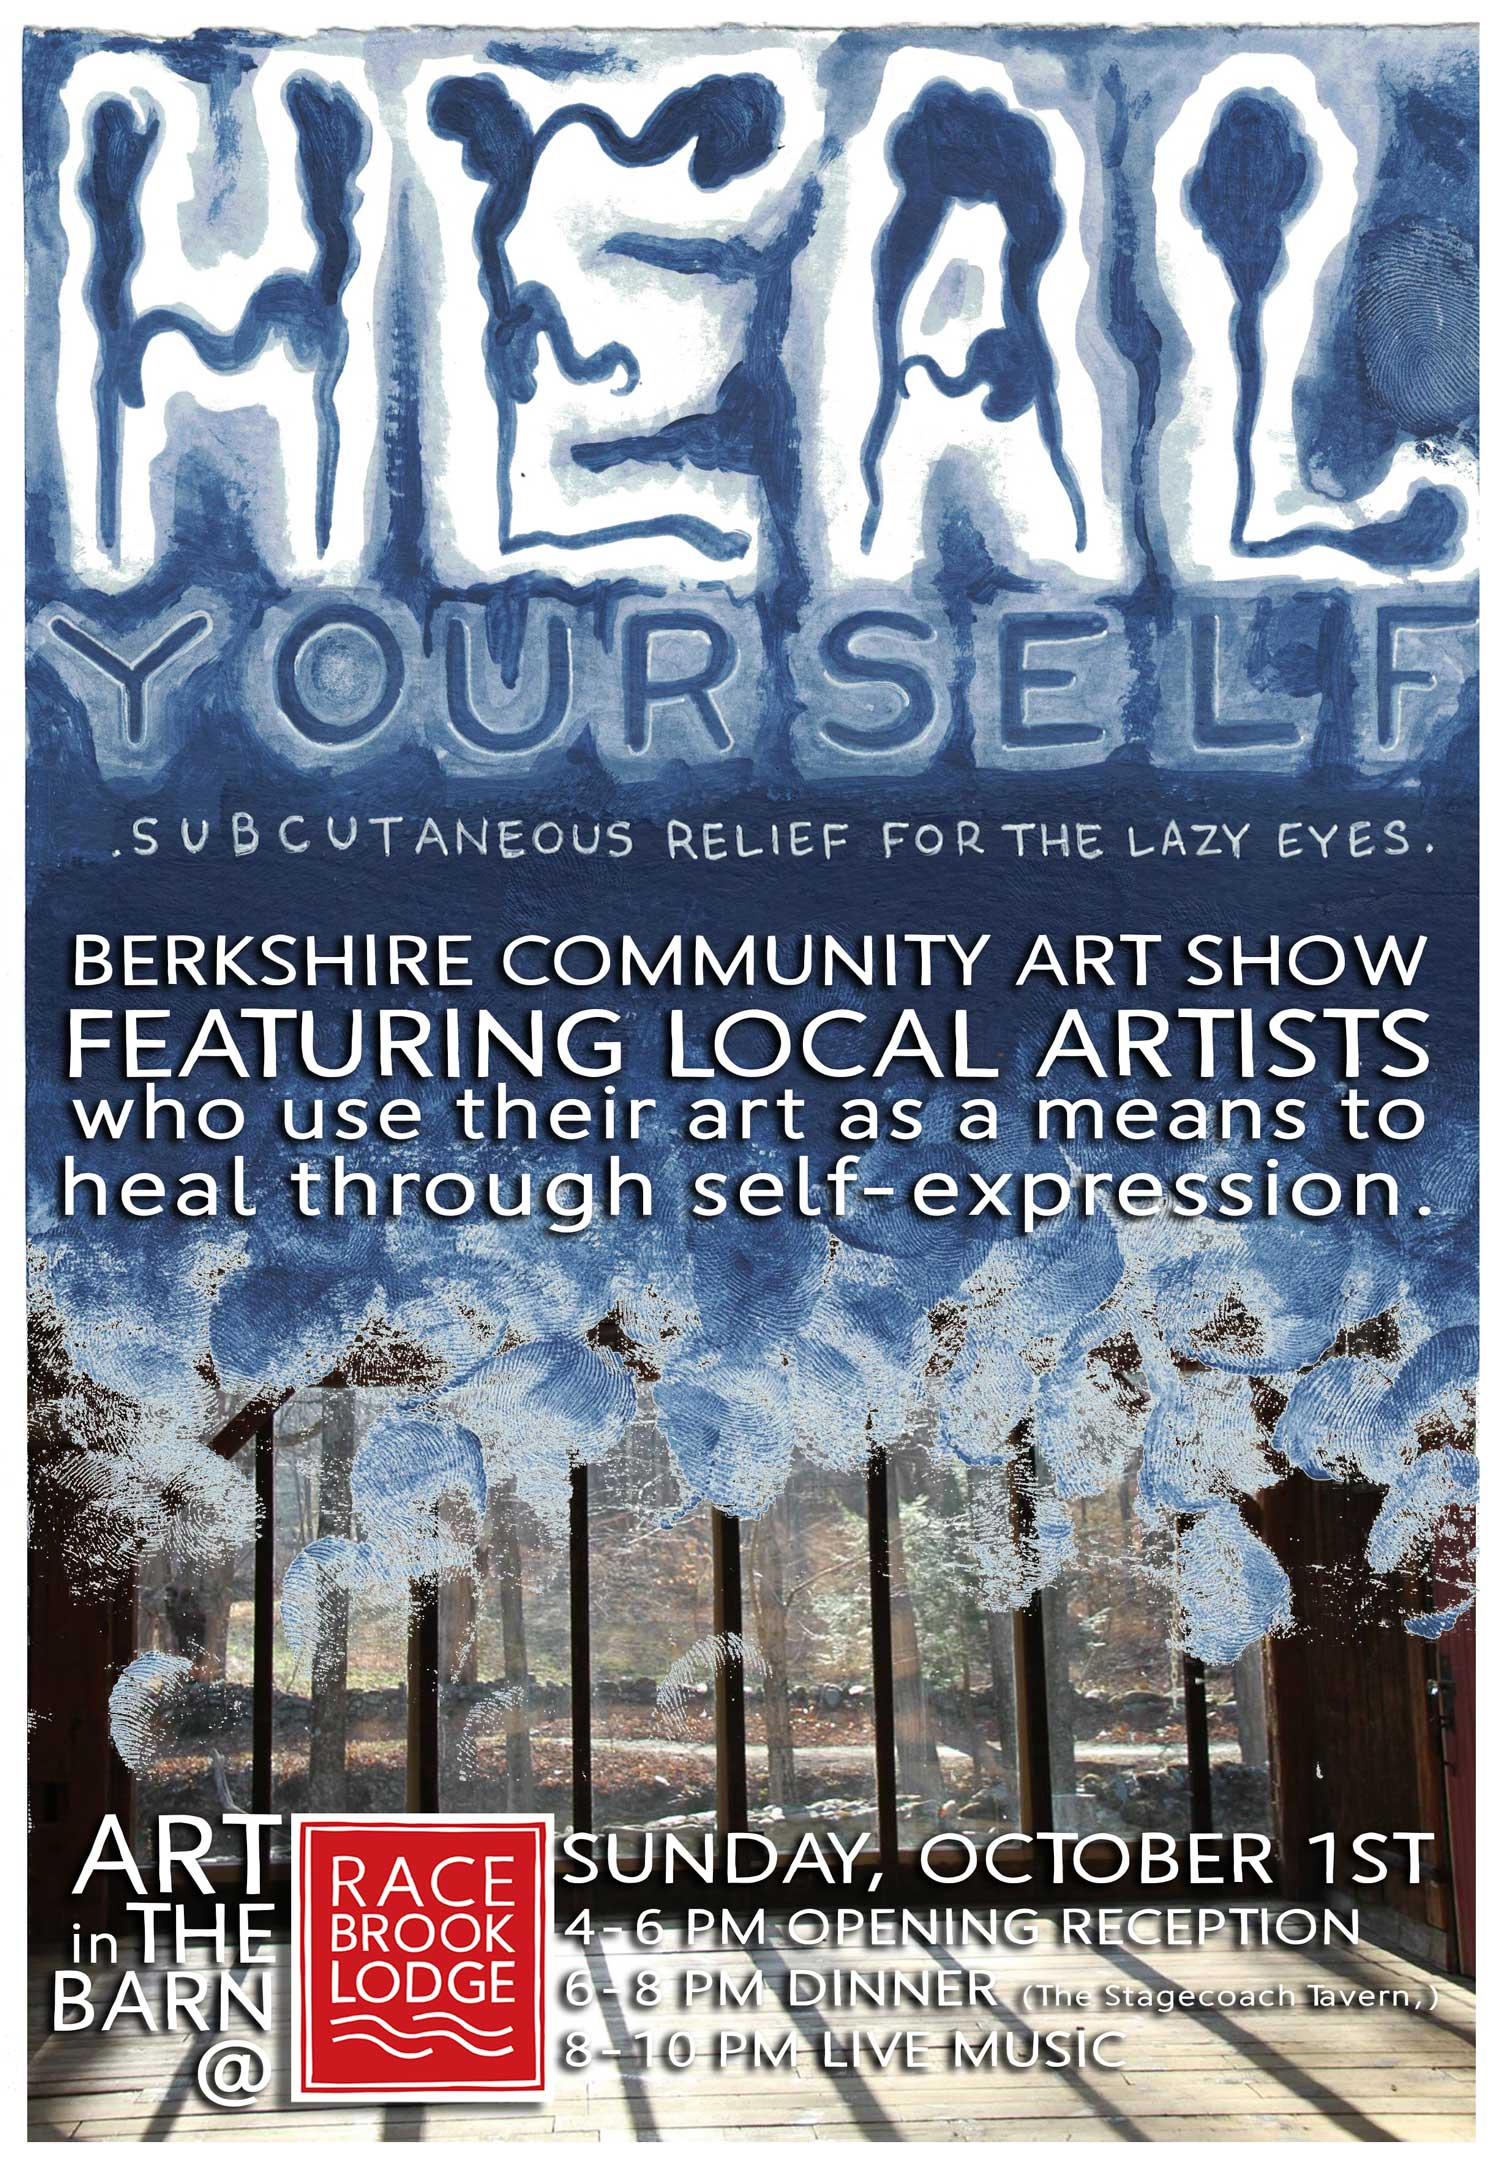 Art in The Barn at Race Brook Lodge: Sunday October 1st, 2017 - 4-6pm opening reception, 6-8 pm dinner by the Stagecoach Tavern (served in The Barn), 8-10 pm live music in The Barn.